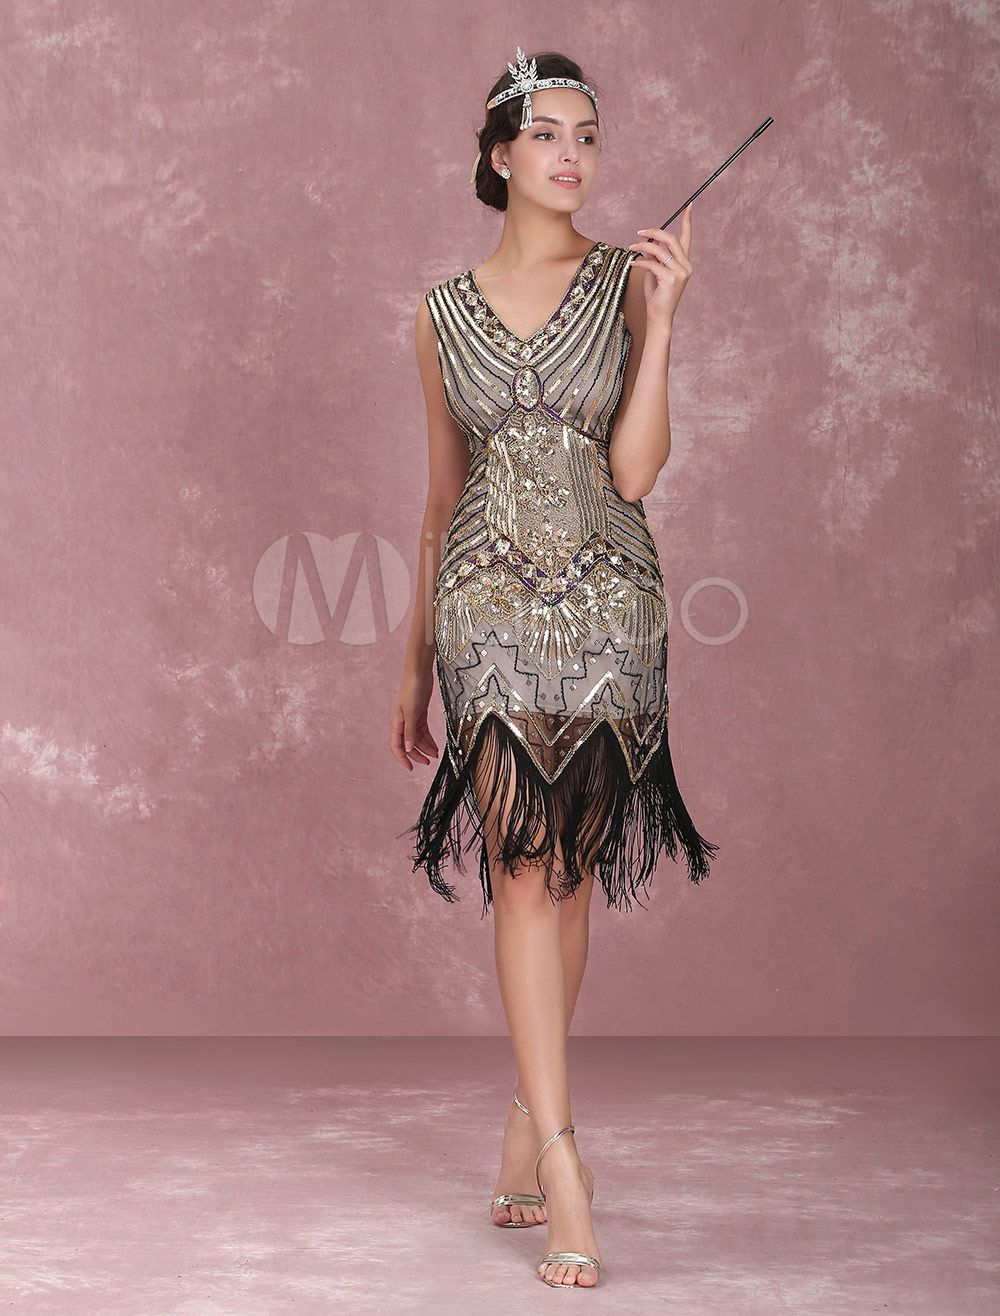 Great Gatsby Dress 1920s Fashion Vintage Style Black Sequined Tassels Flapper Girl Dress Vintage Costume Halloween 1920s Party Dresses Great Gatsby Dresses Gatsby Party Dress [ 1316 x 1000 Pixel ]